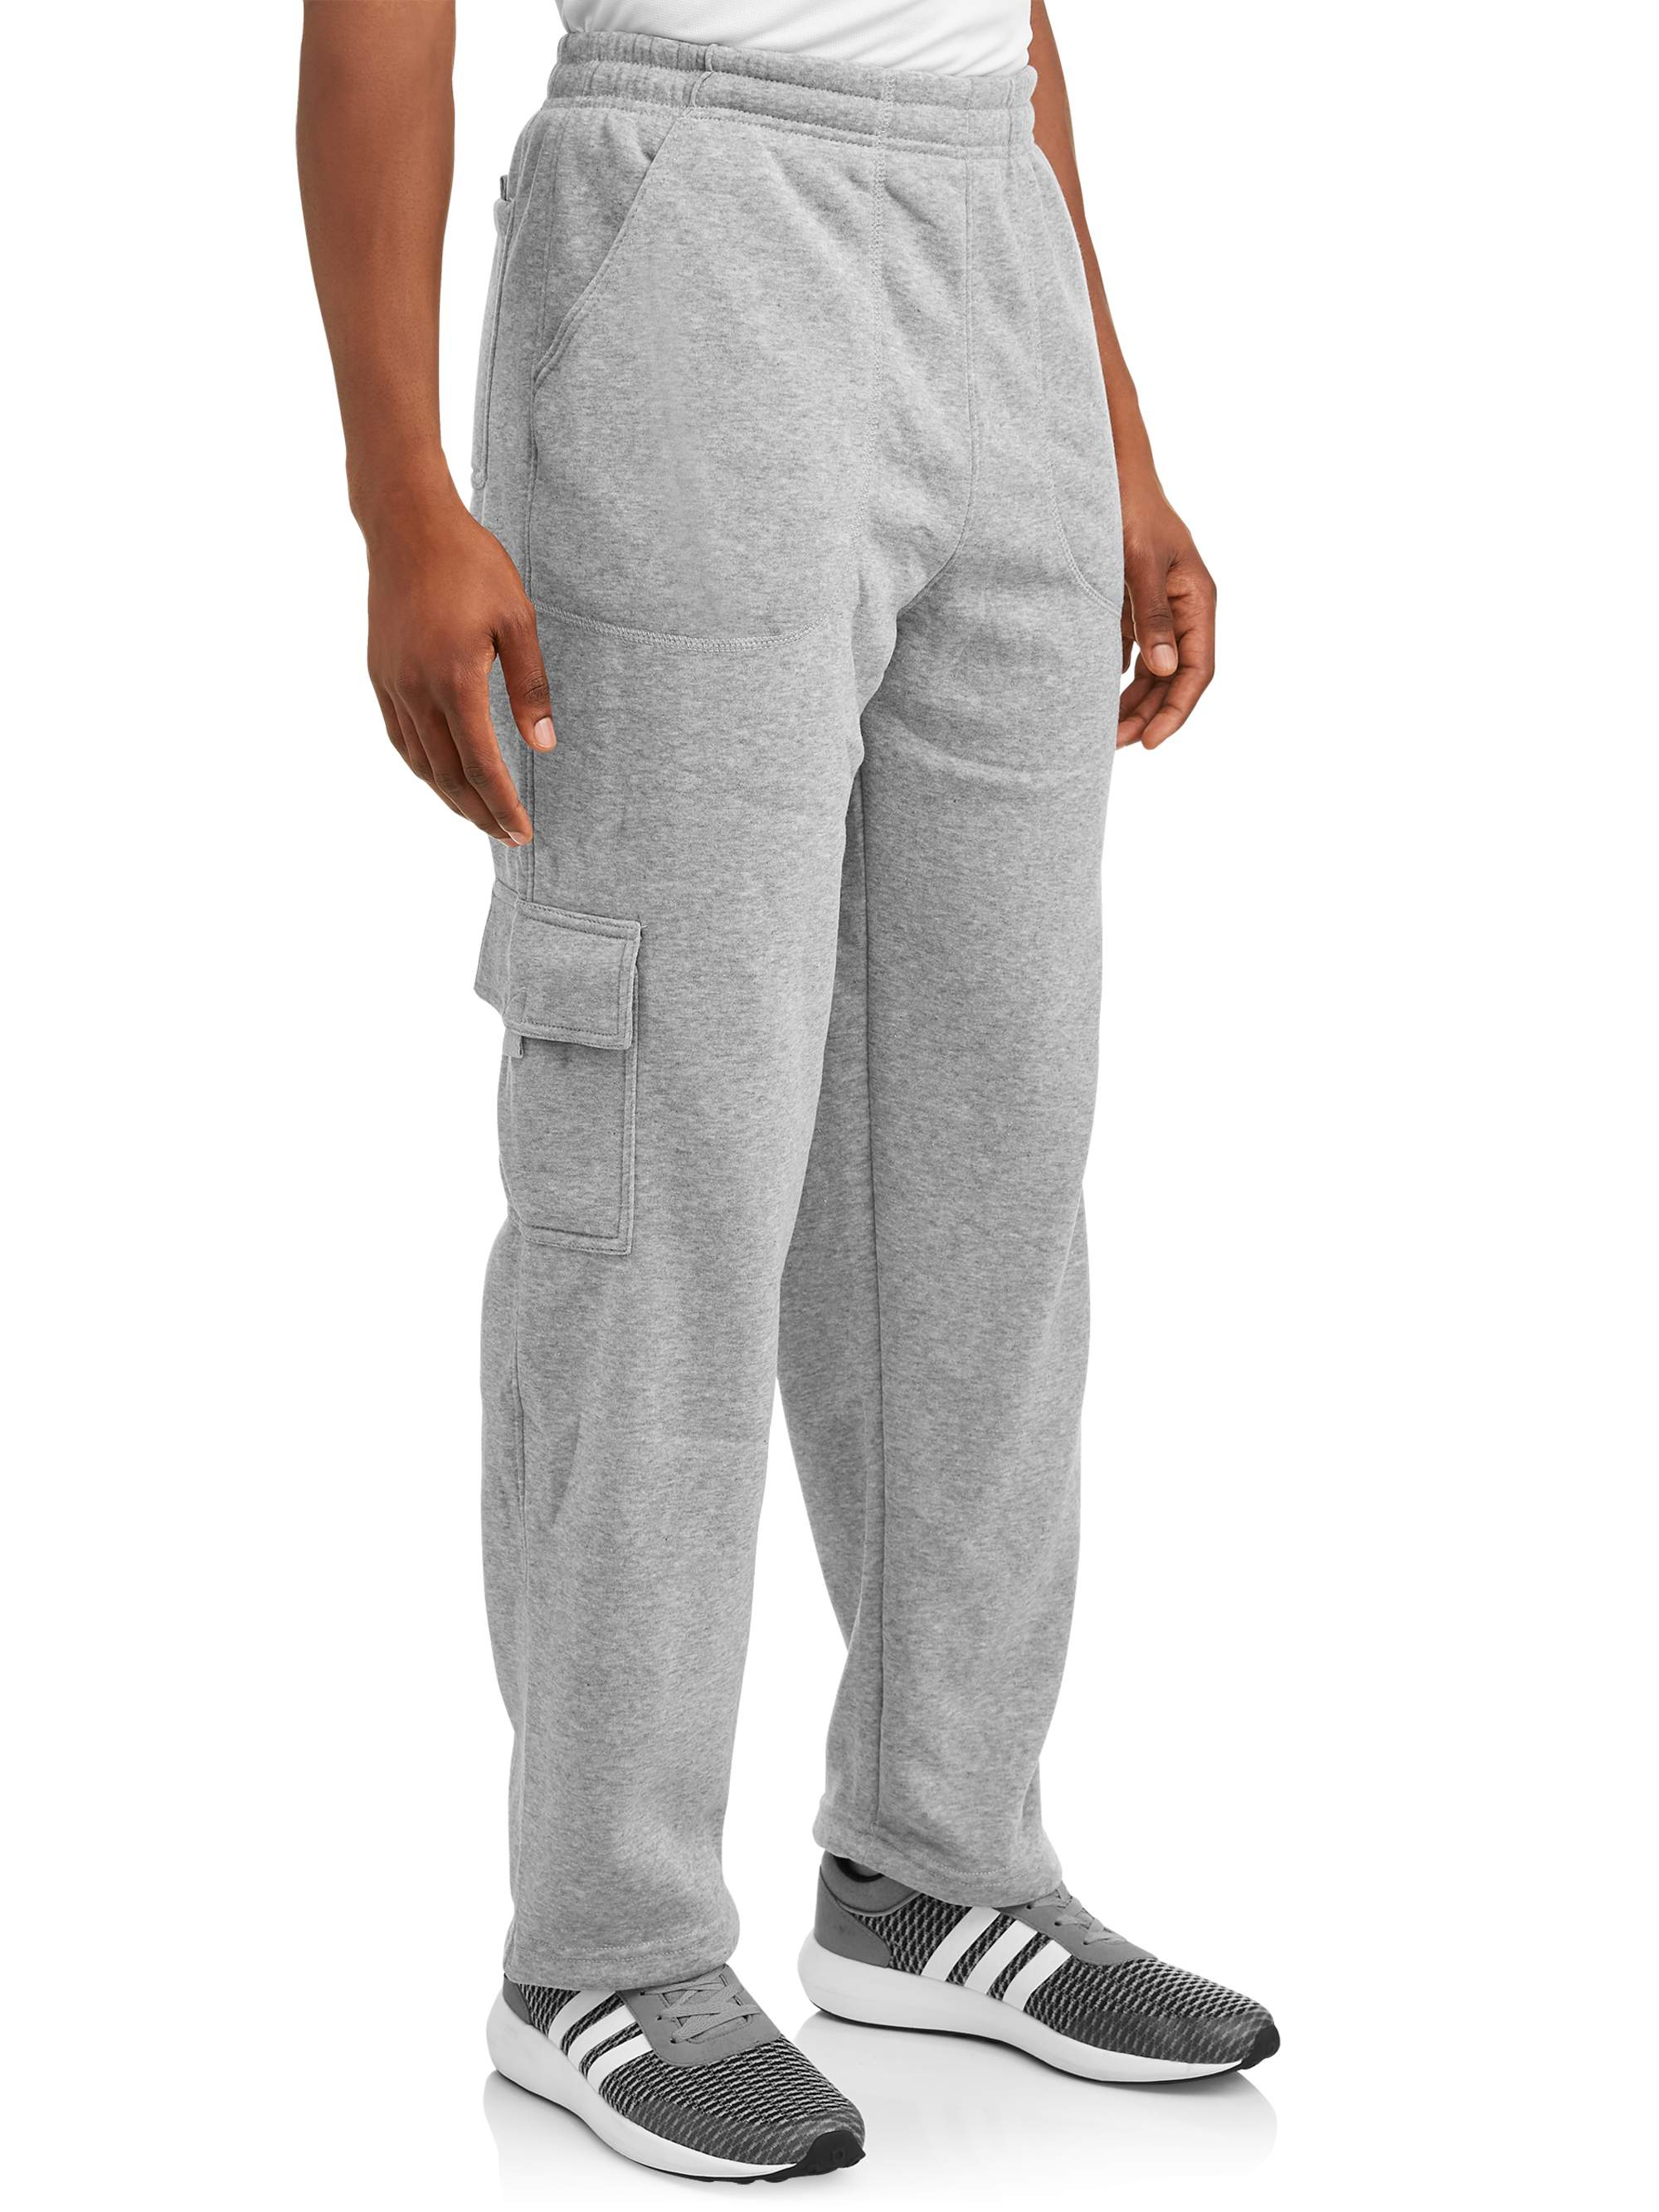 i5 INC Big Men's Cargo Pocket Fleece Sweatpant